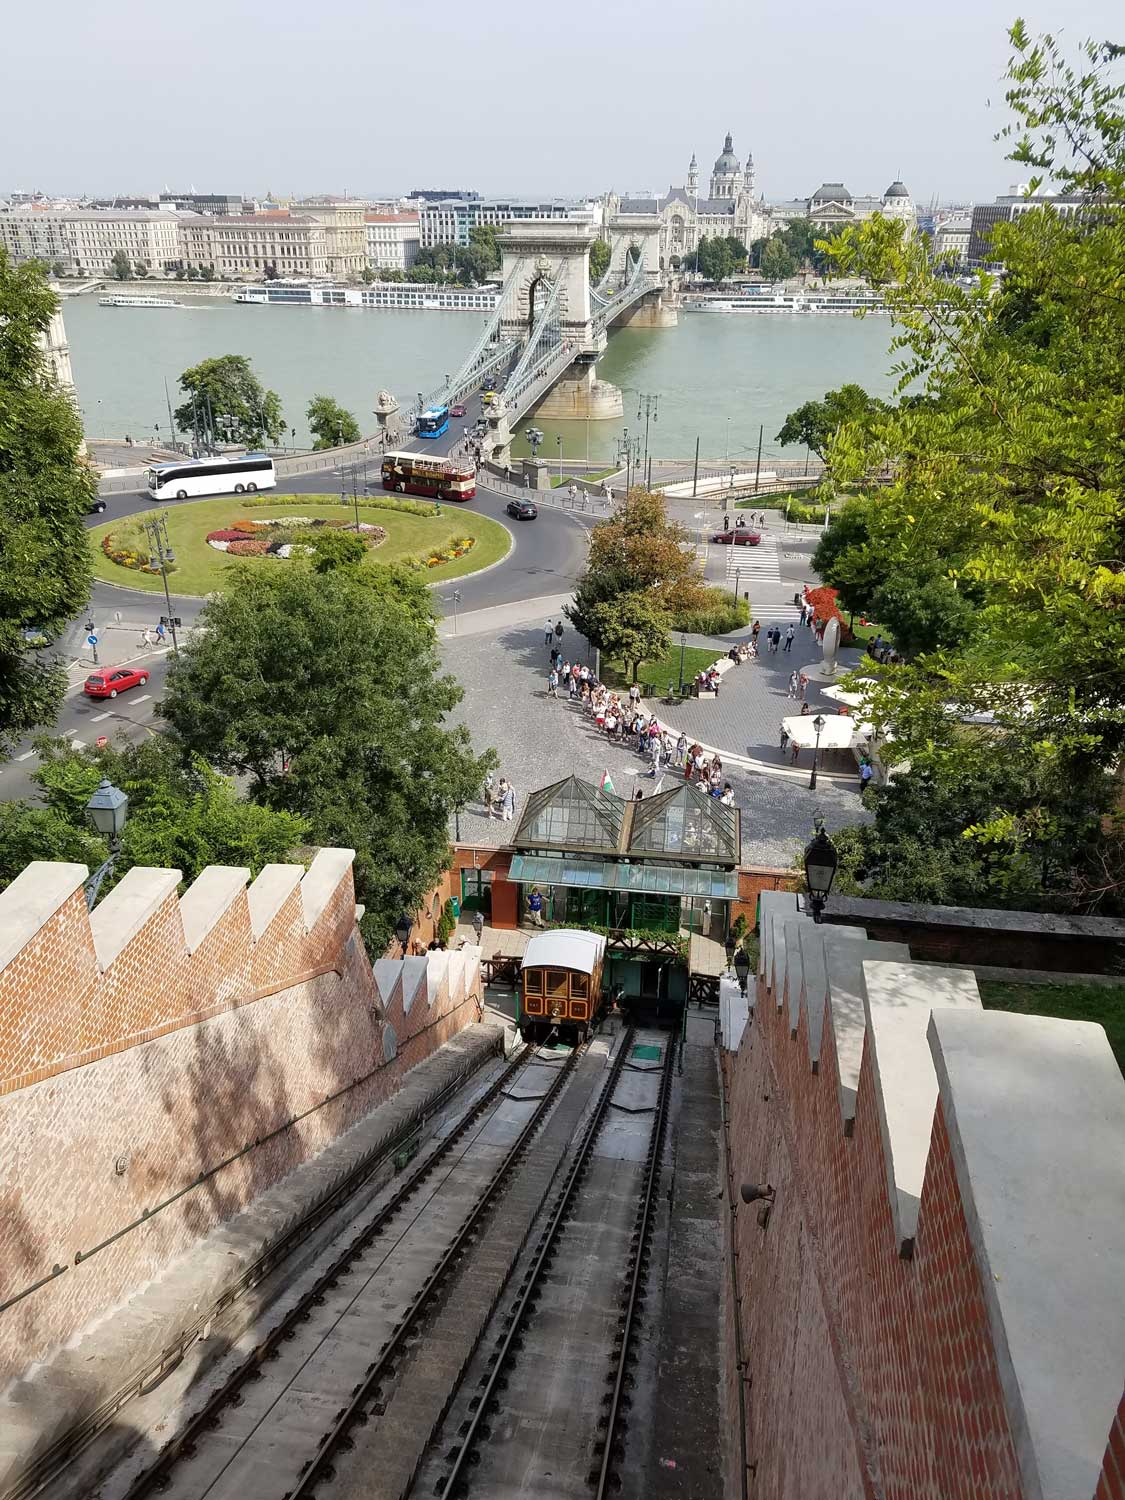 A classic Budapest vista — the famous Castle Hill Funicular and Chain Bridge beyond. The Funicular, built in the 1800s, slowly carries passengers from the square below up to the top of Castle Hill.